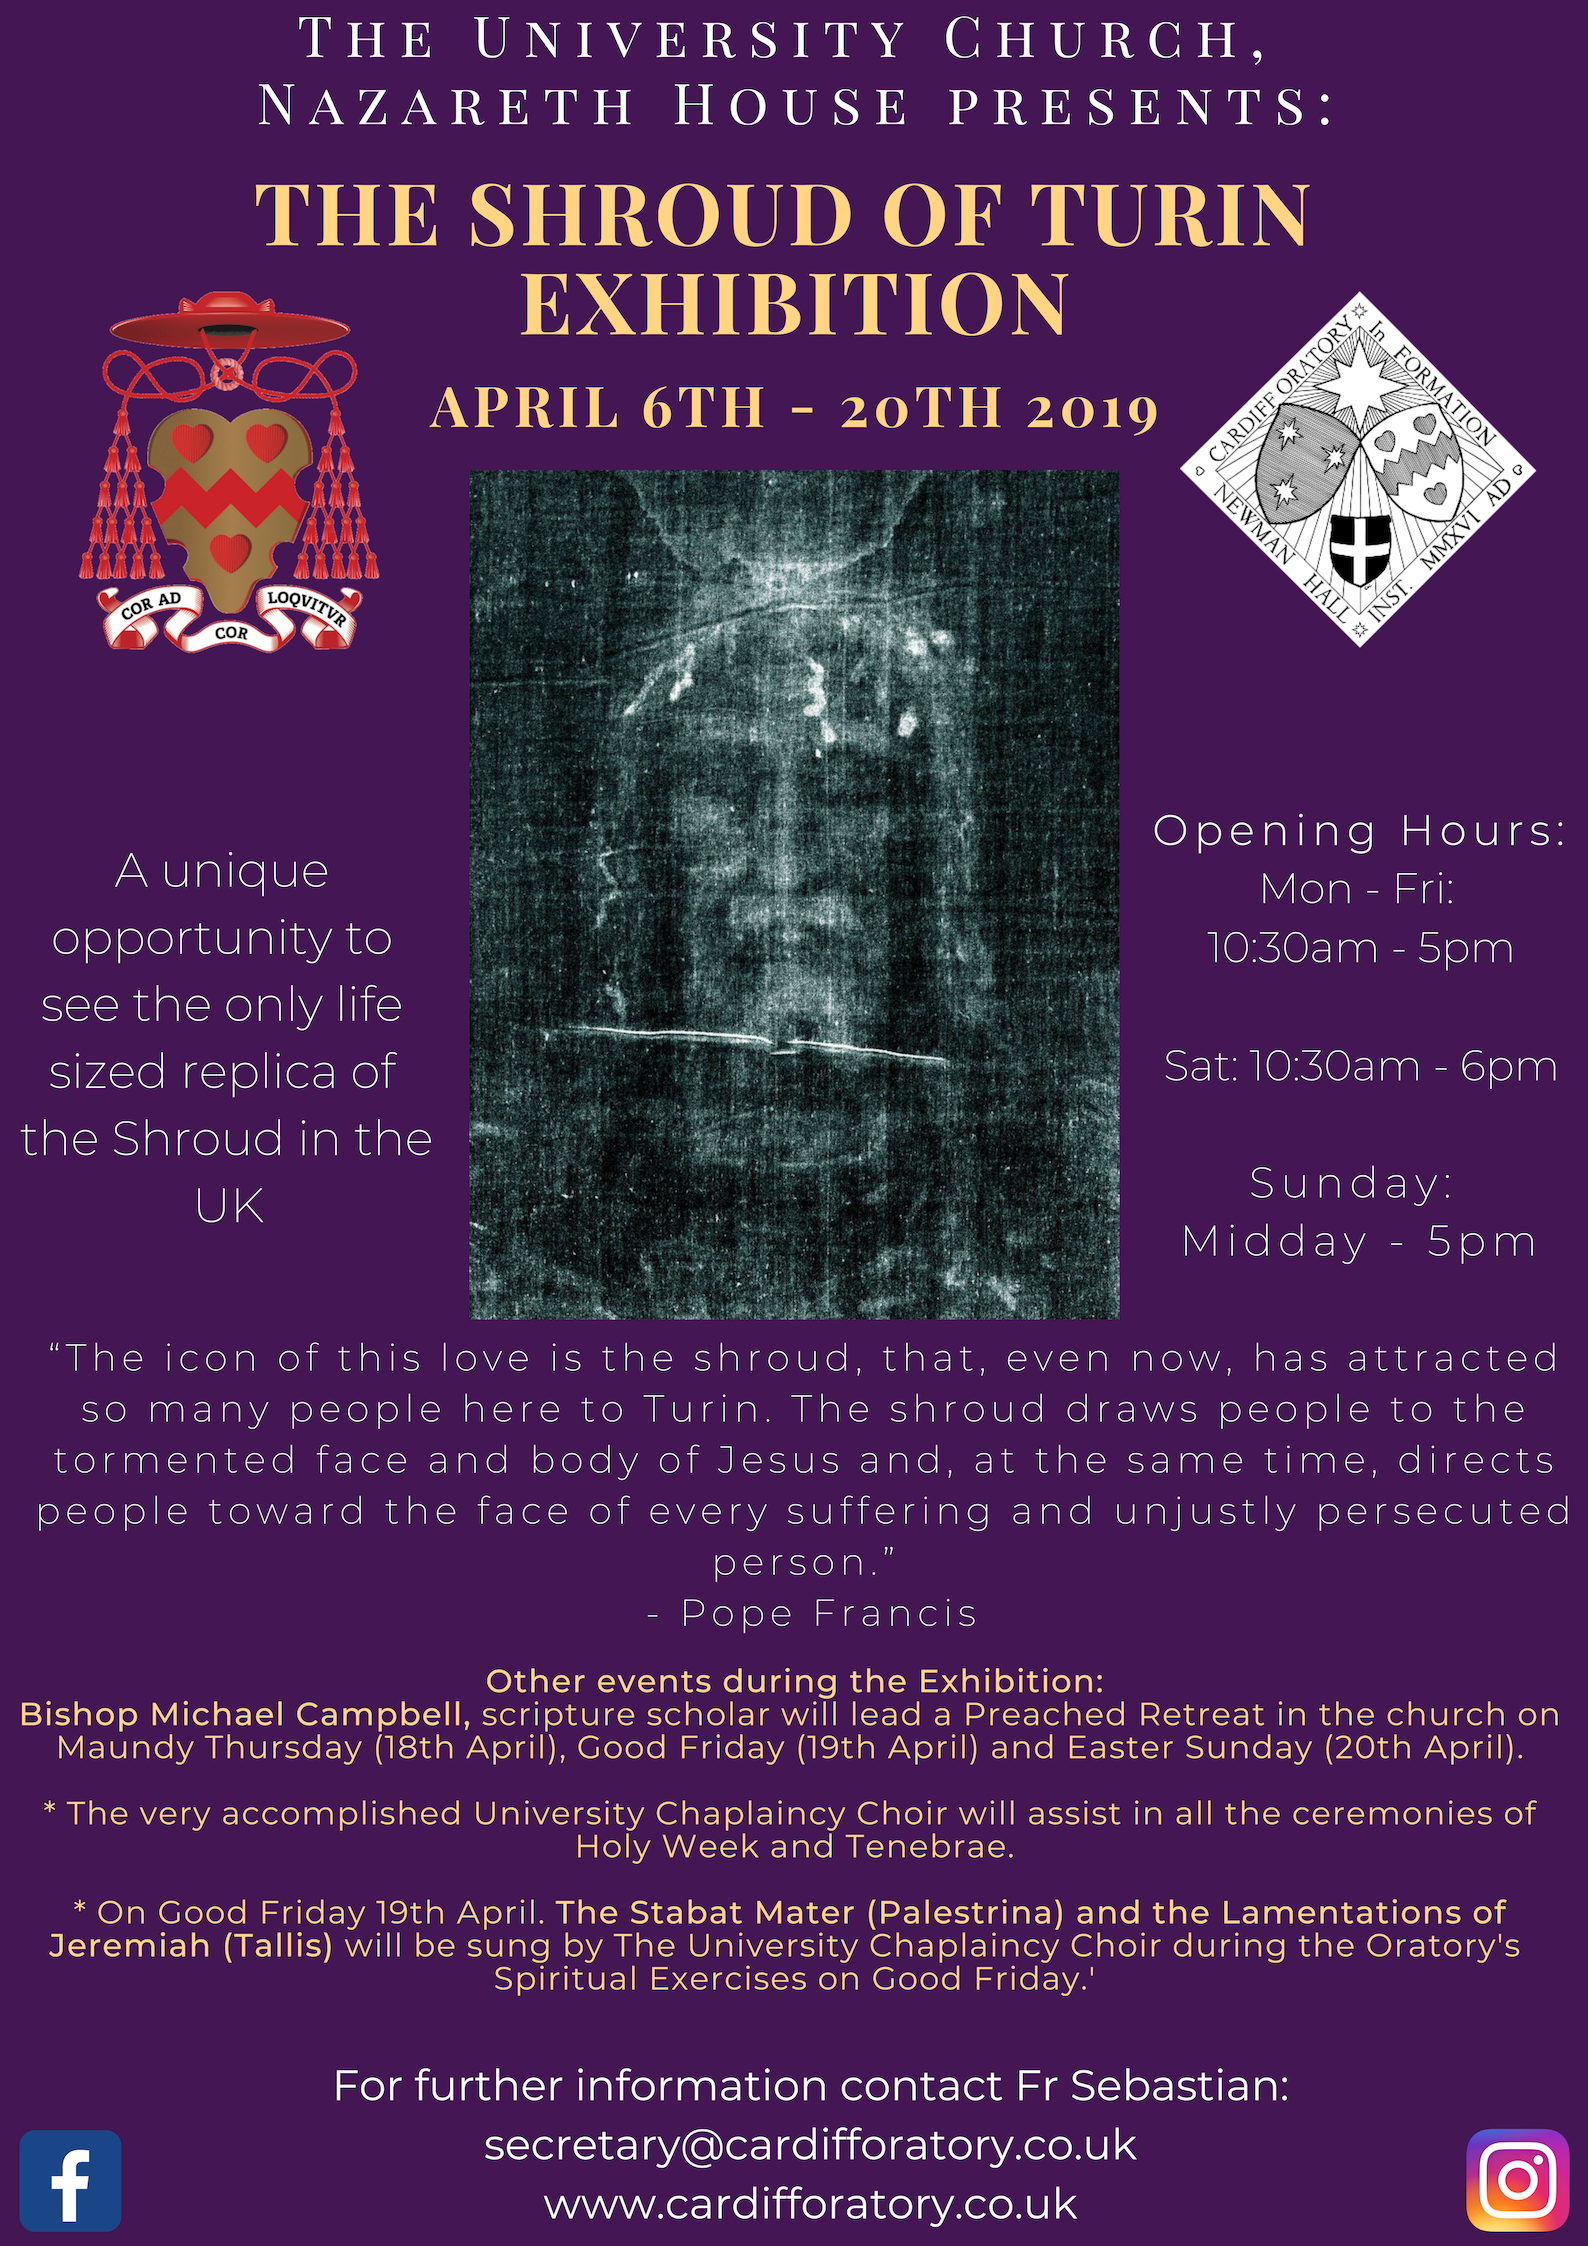 Cardiff Turin Shroud Exhibition, 2019 – The Cardiff Oratory